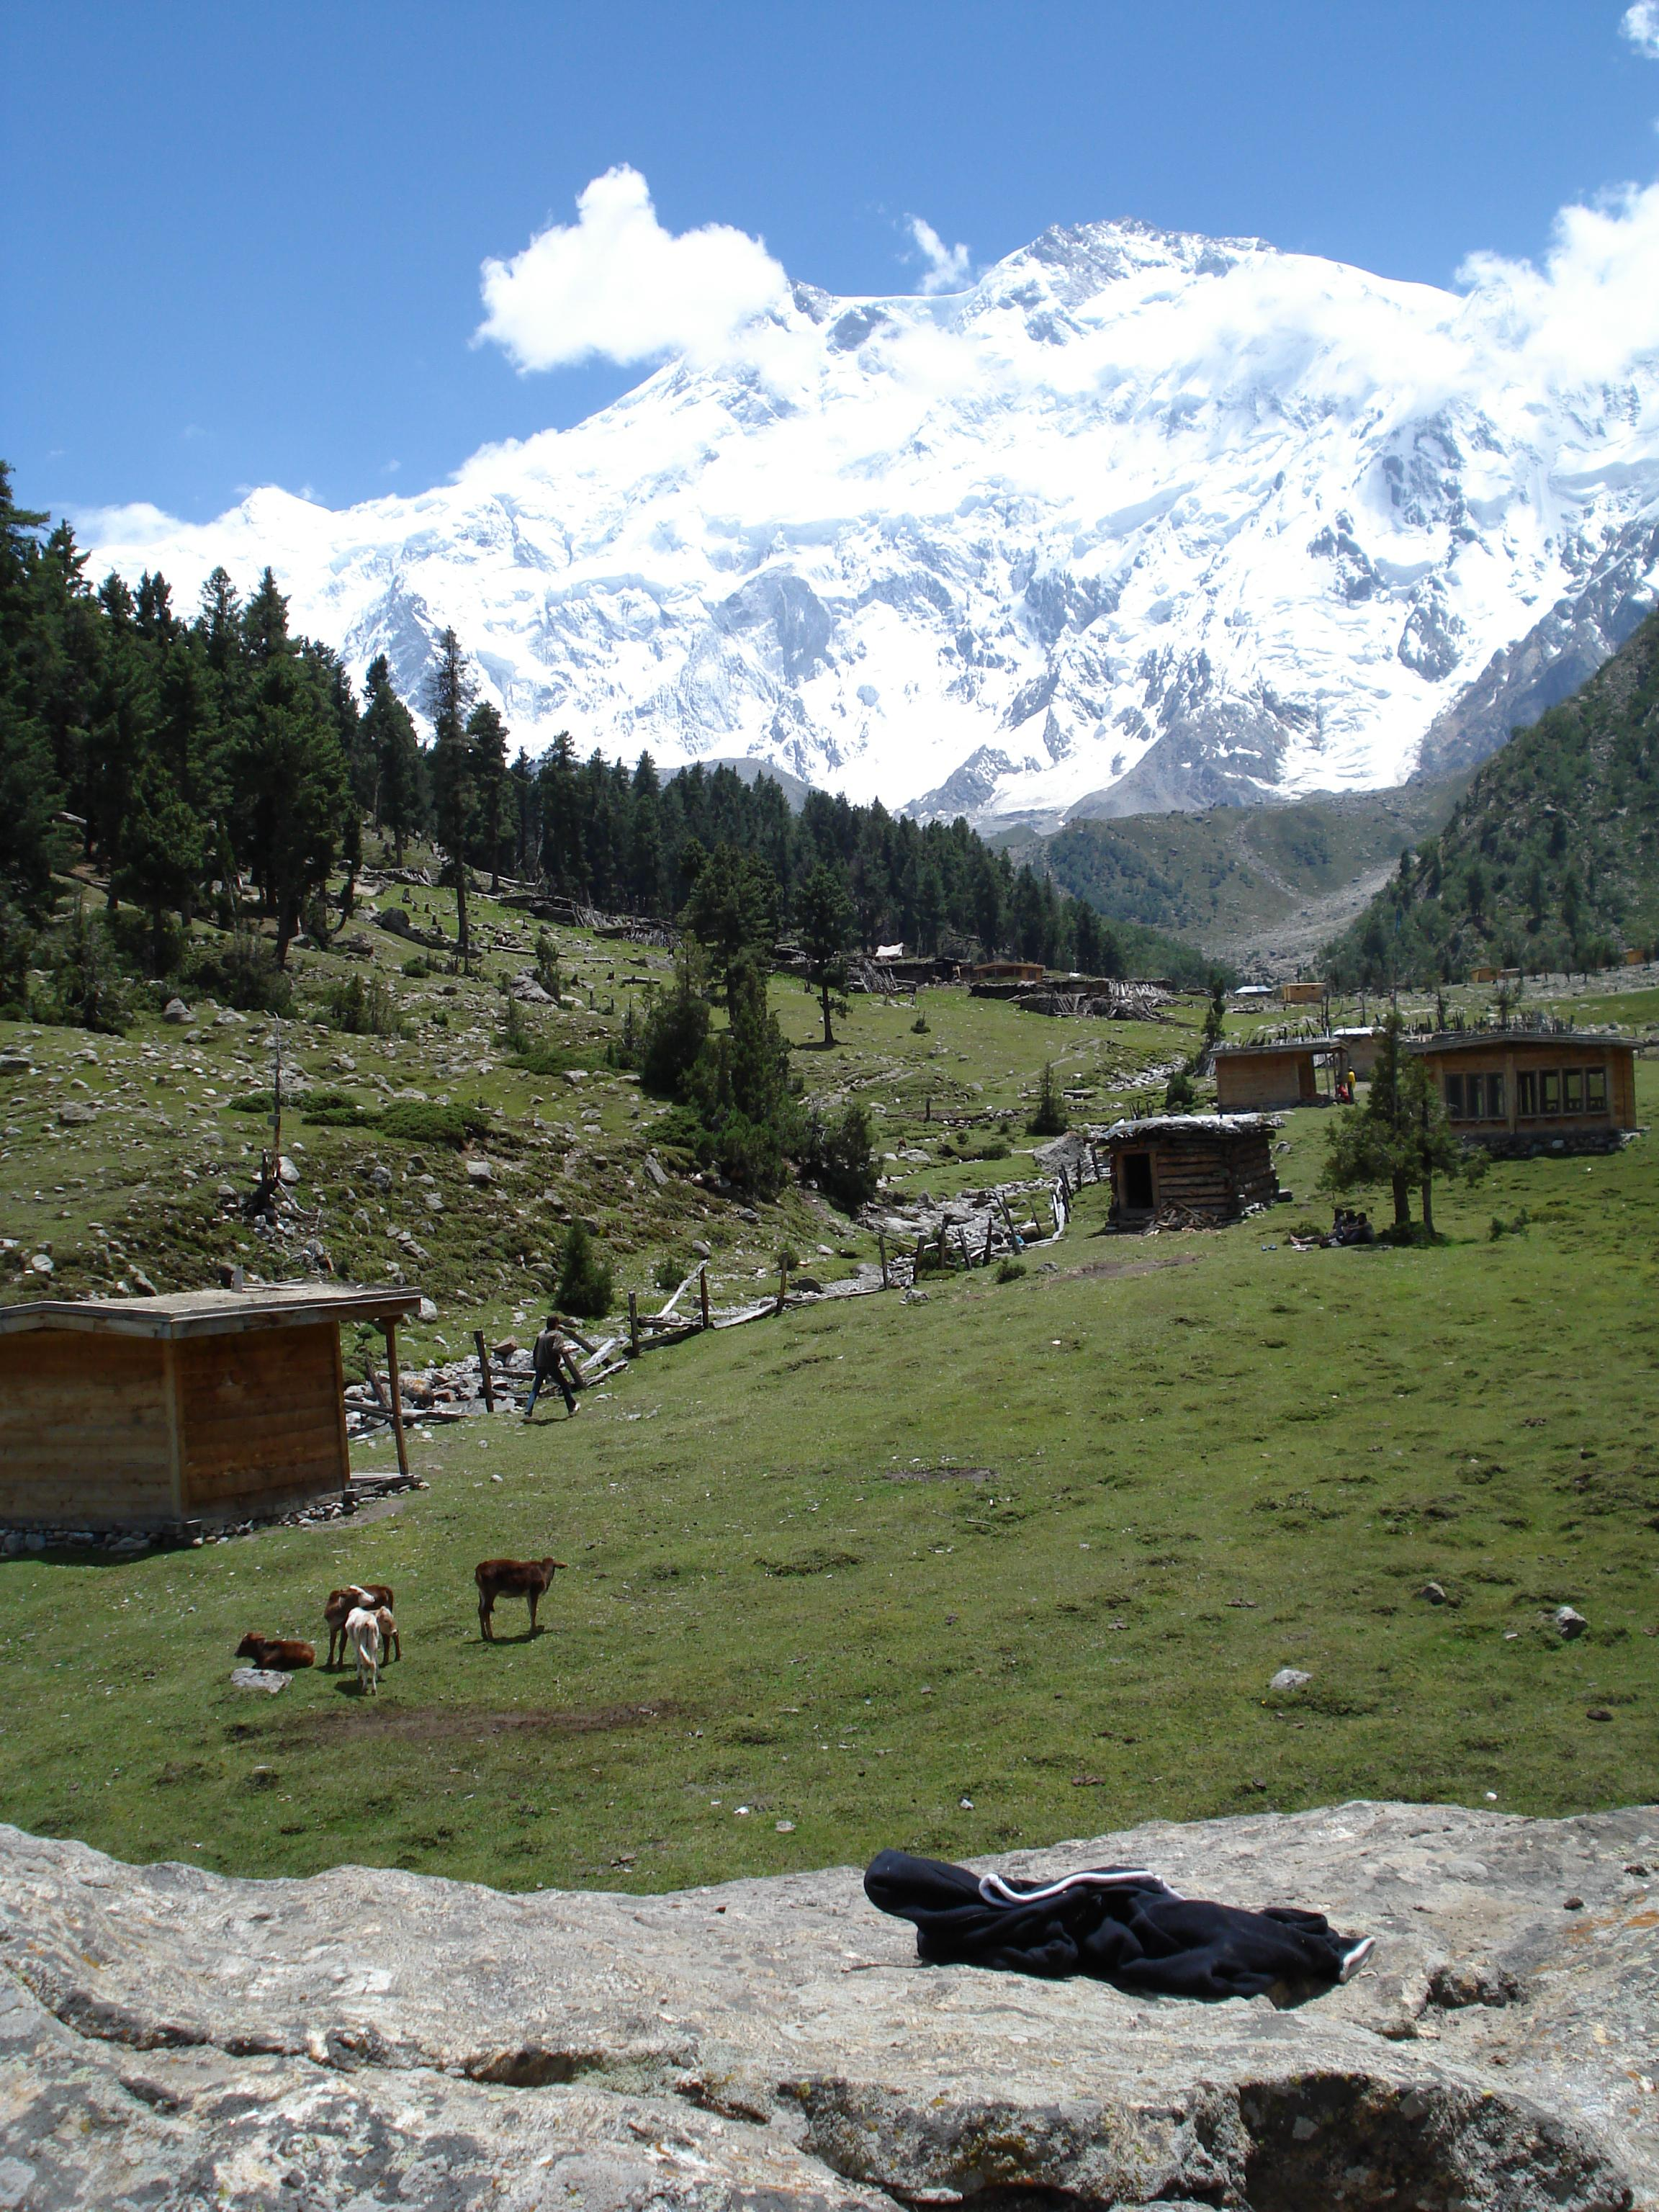 Fairy meadows photo